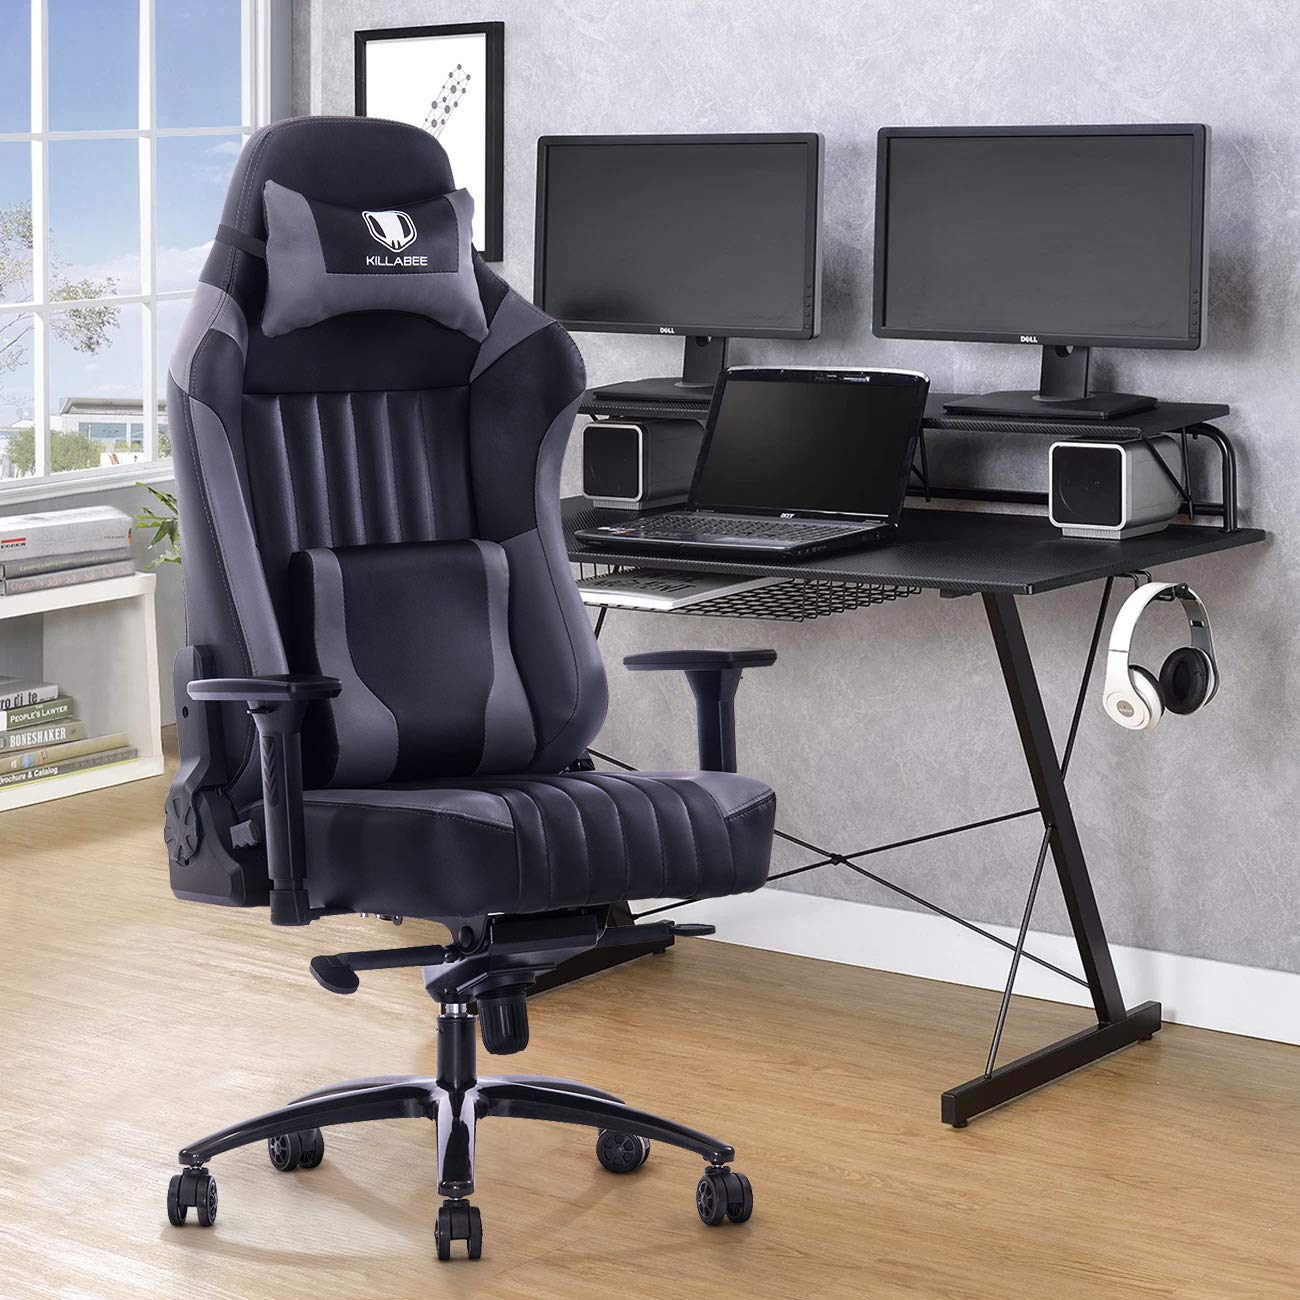 KILLABEE Adjustable Gaming Chair Review